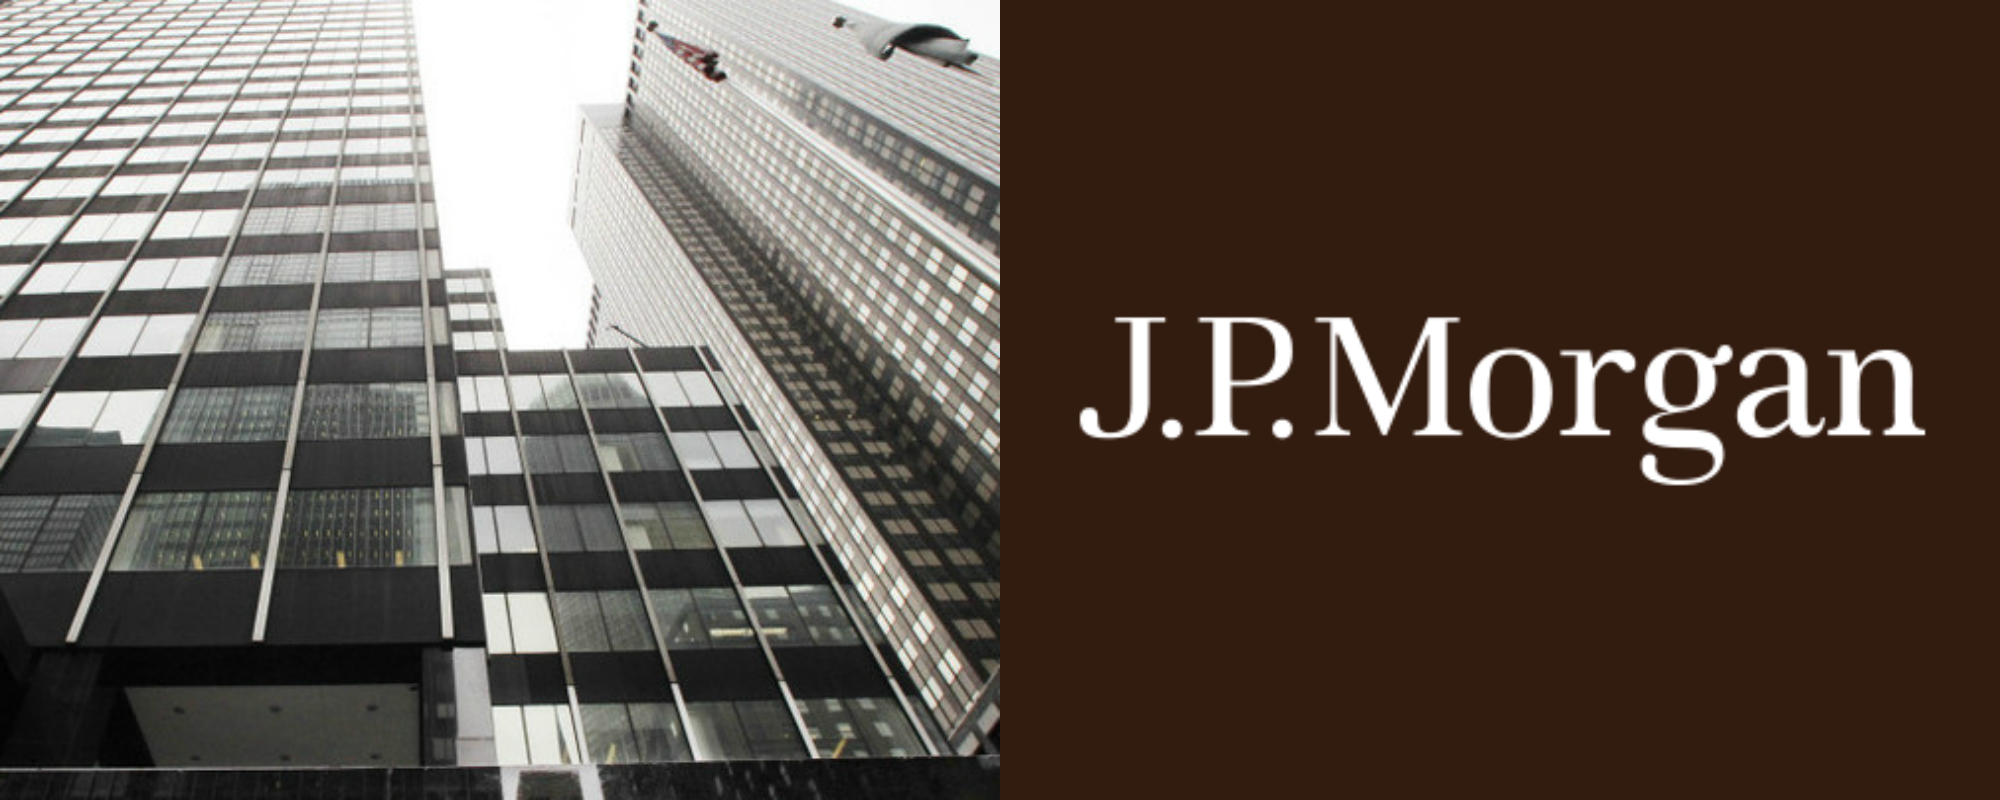 jp morgan Most Powerful M&A Firms in the world best upslide